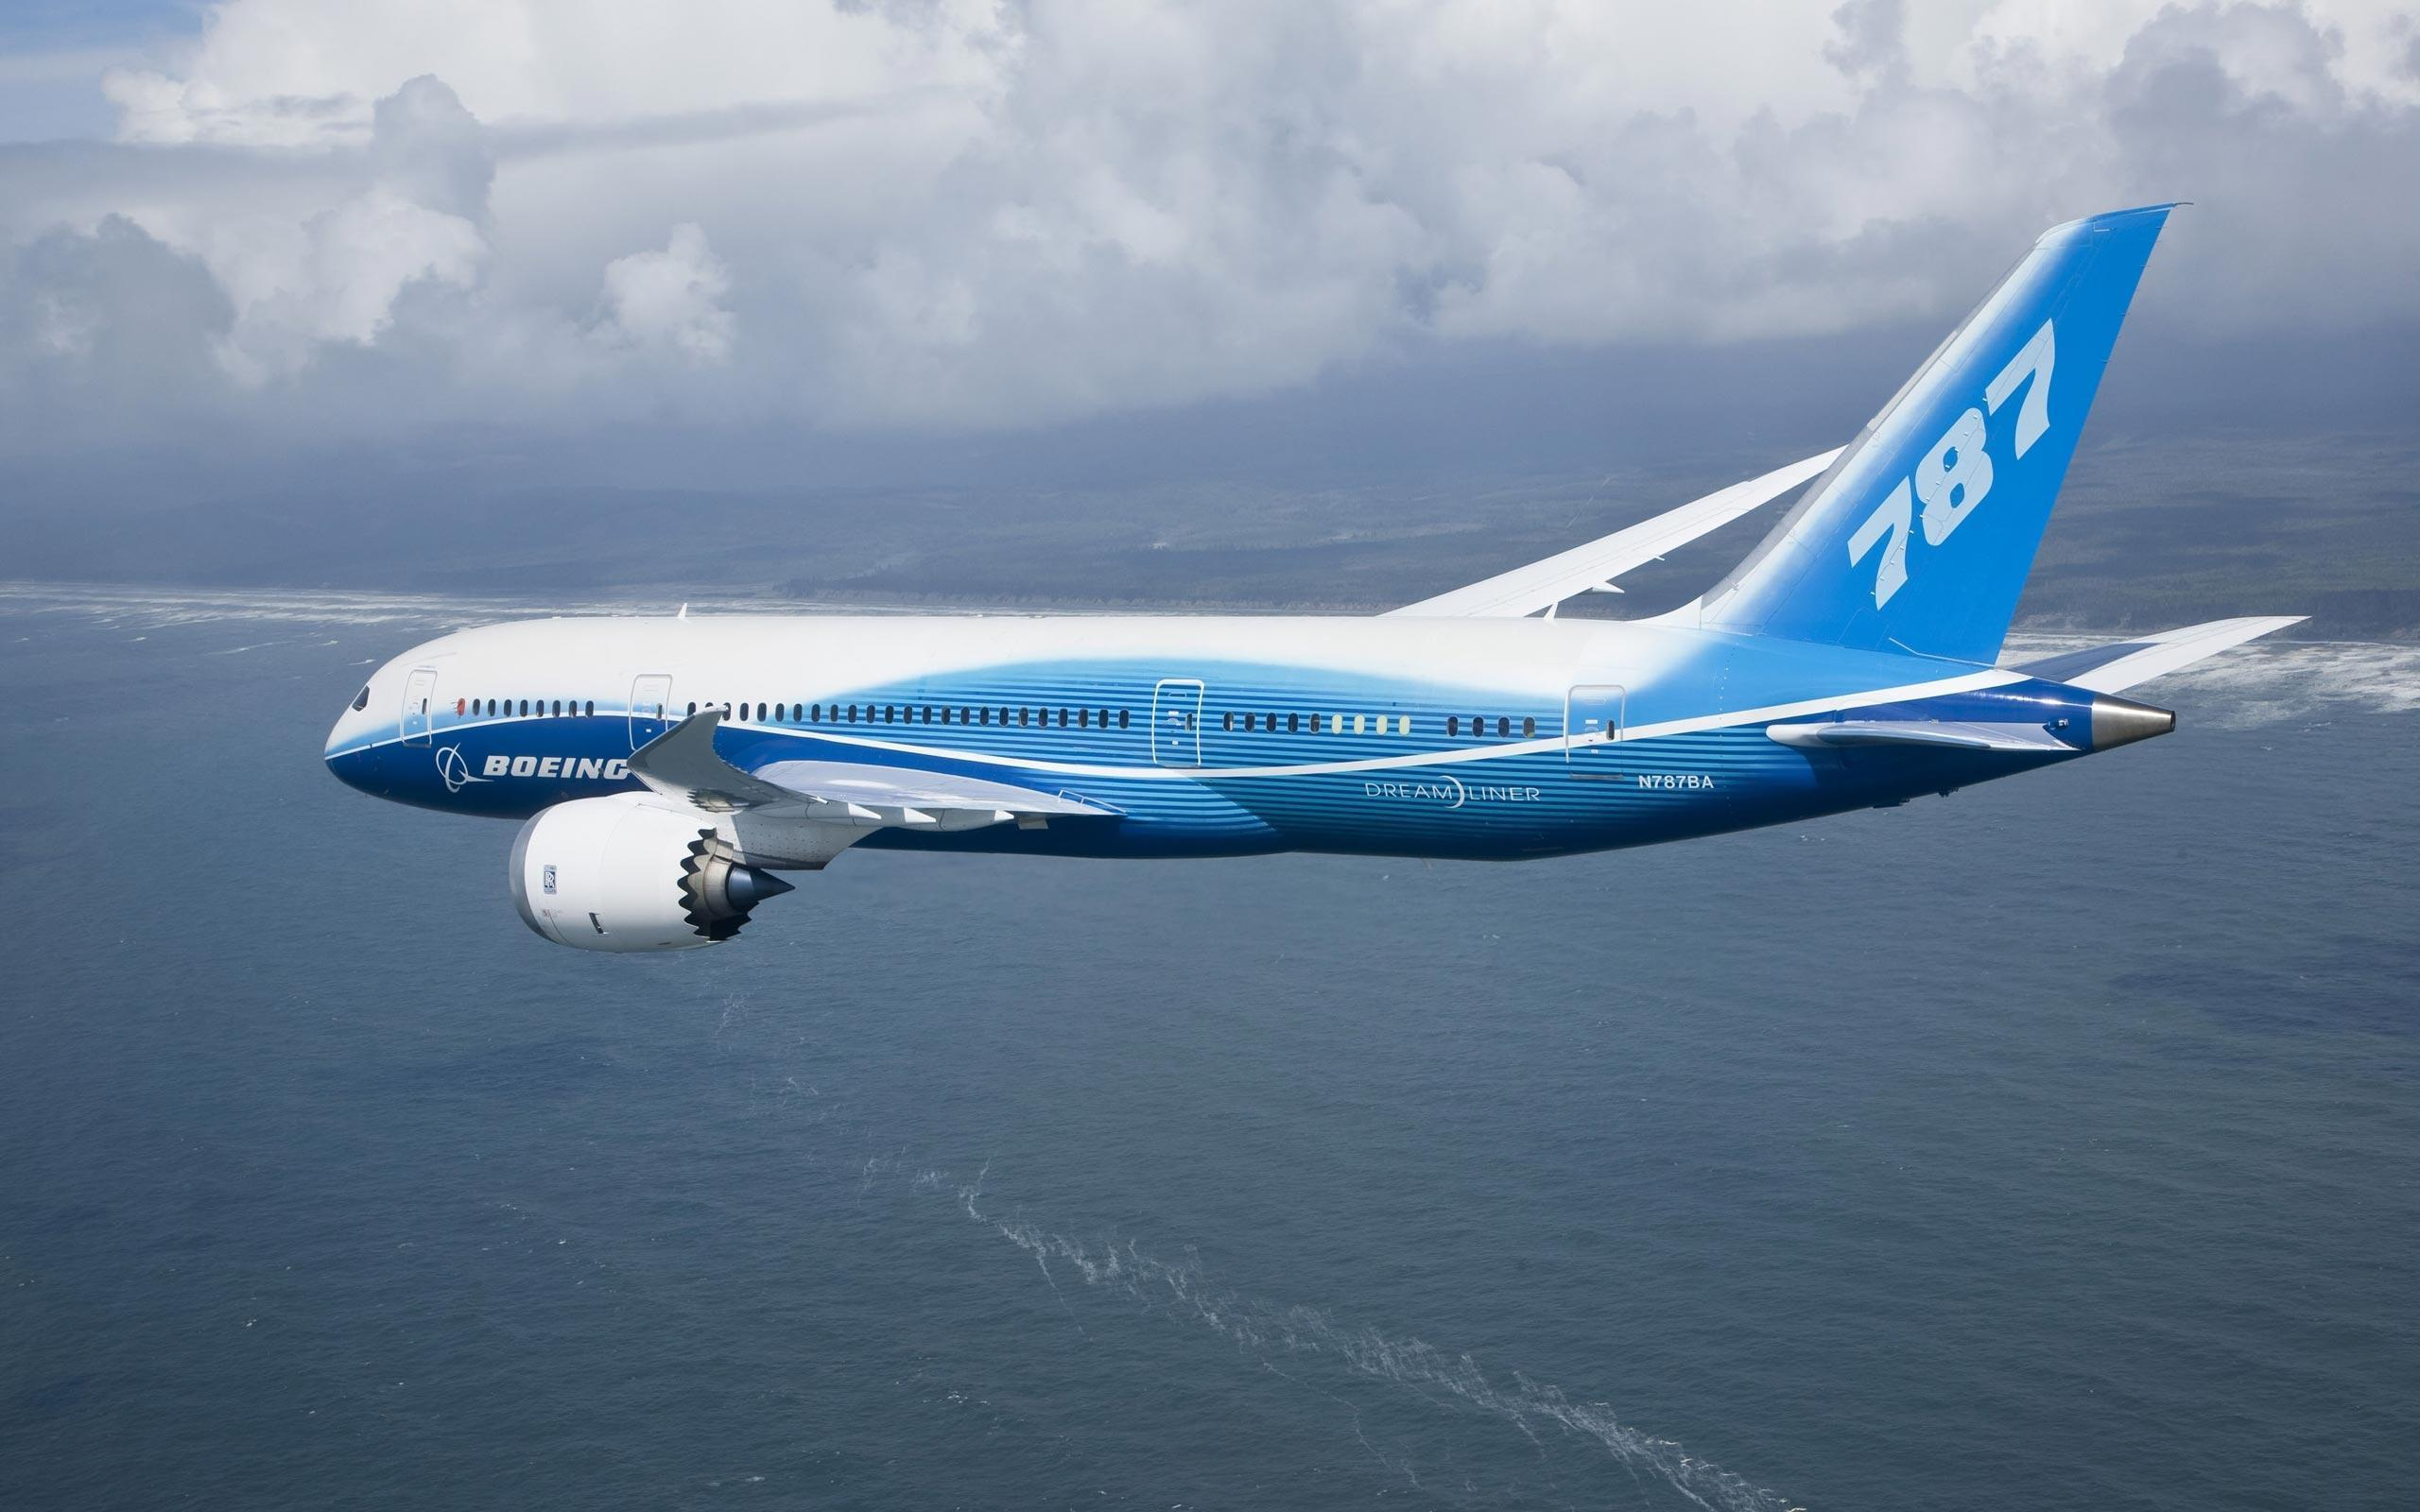 dreamliner wallpaper - photo #23